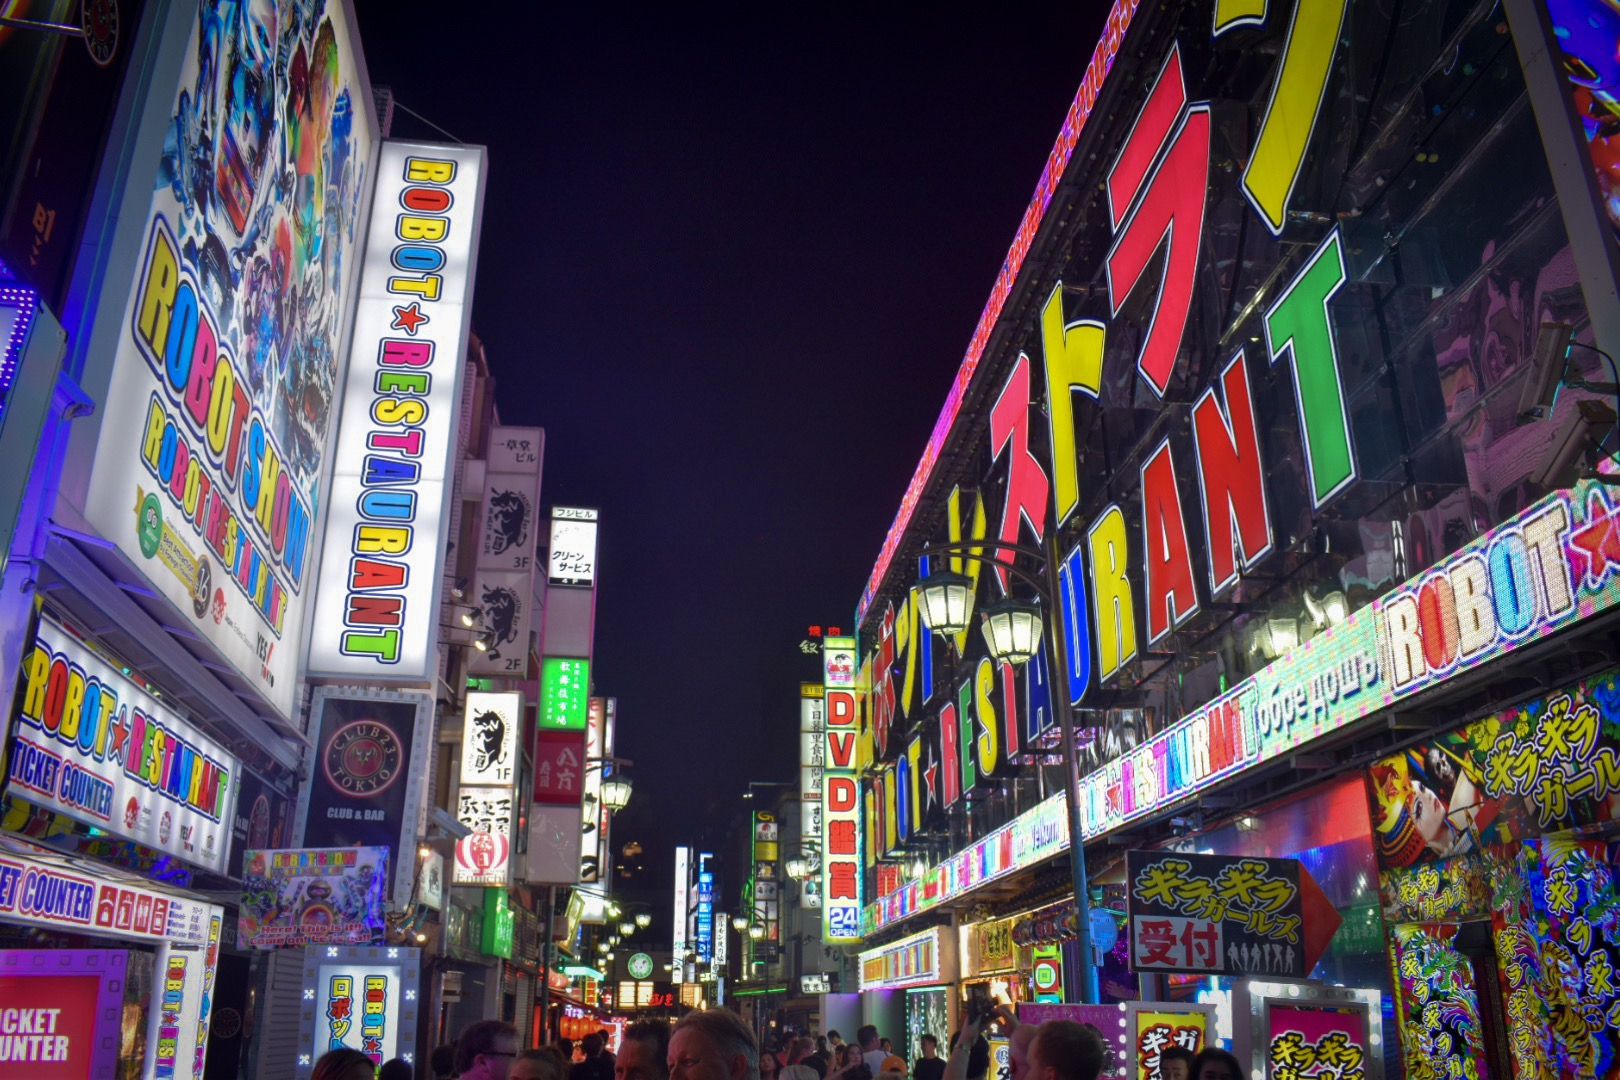 Despite it not quite hitting the mark for me, Tokyo is a cracking destination with so much to see and do.